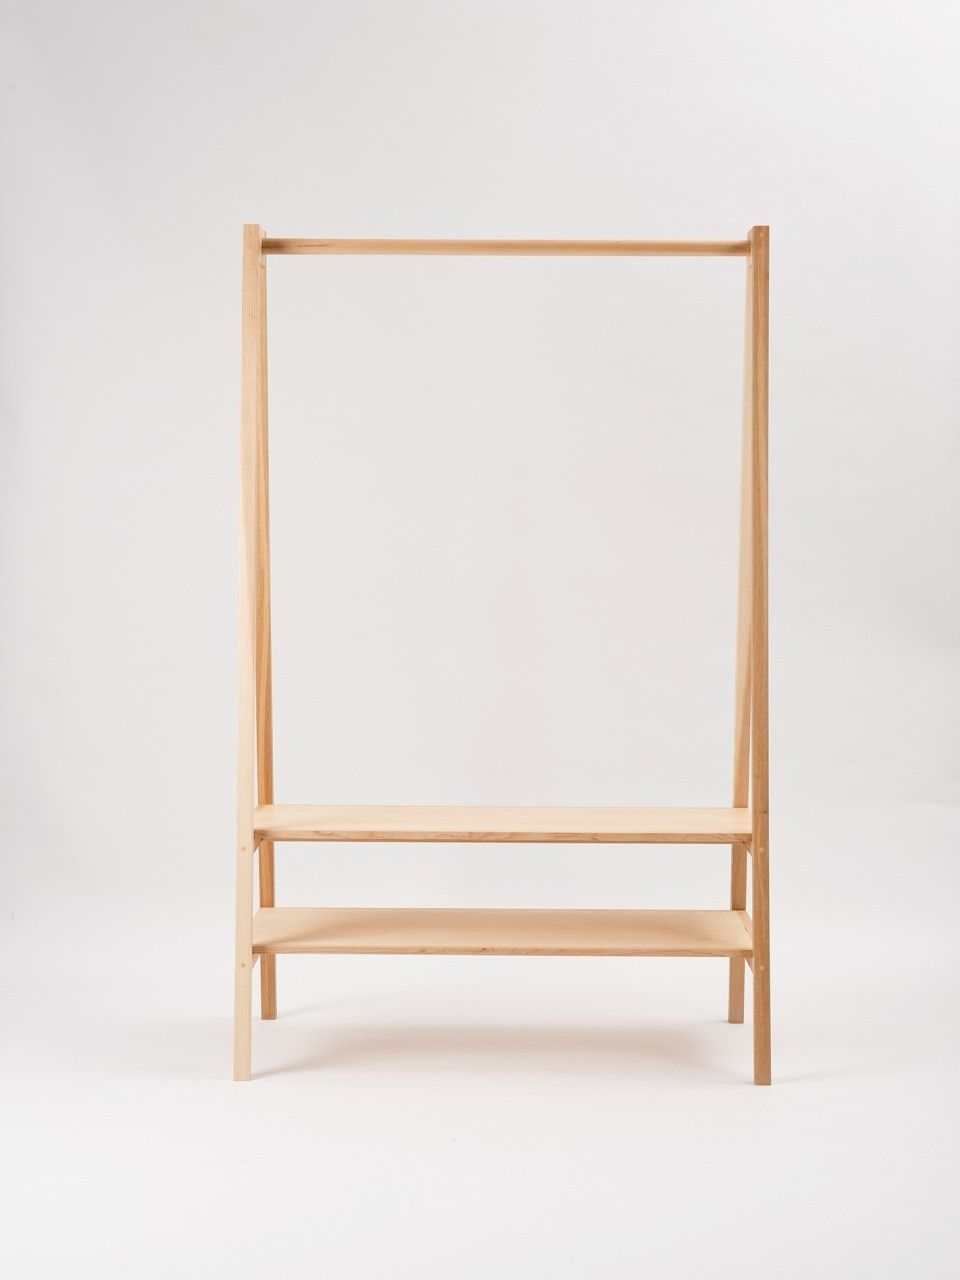 Made by douglas and bec has teamed up with the ever talented sam orme gee to create the ultimate garment rack